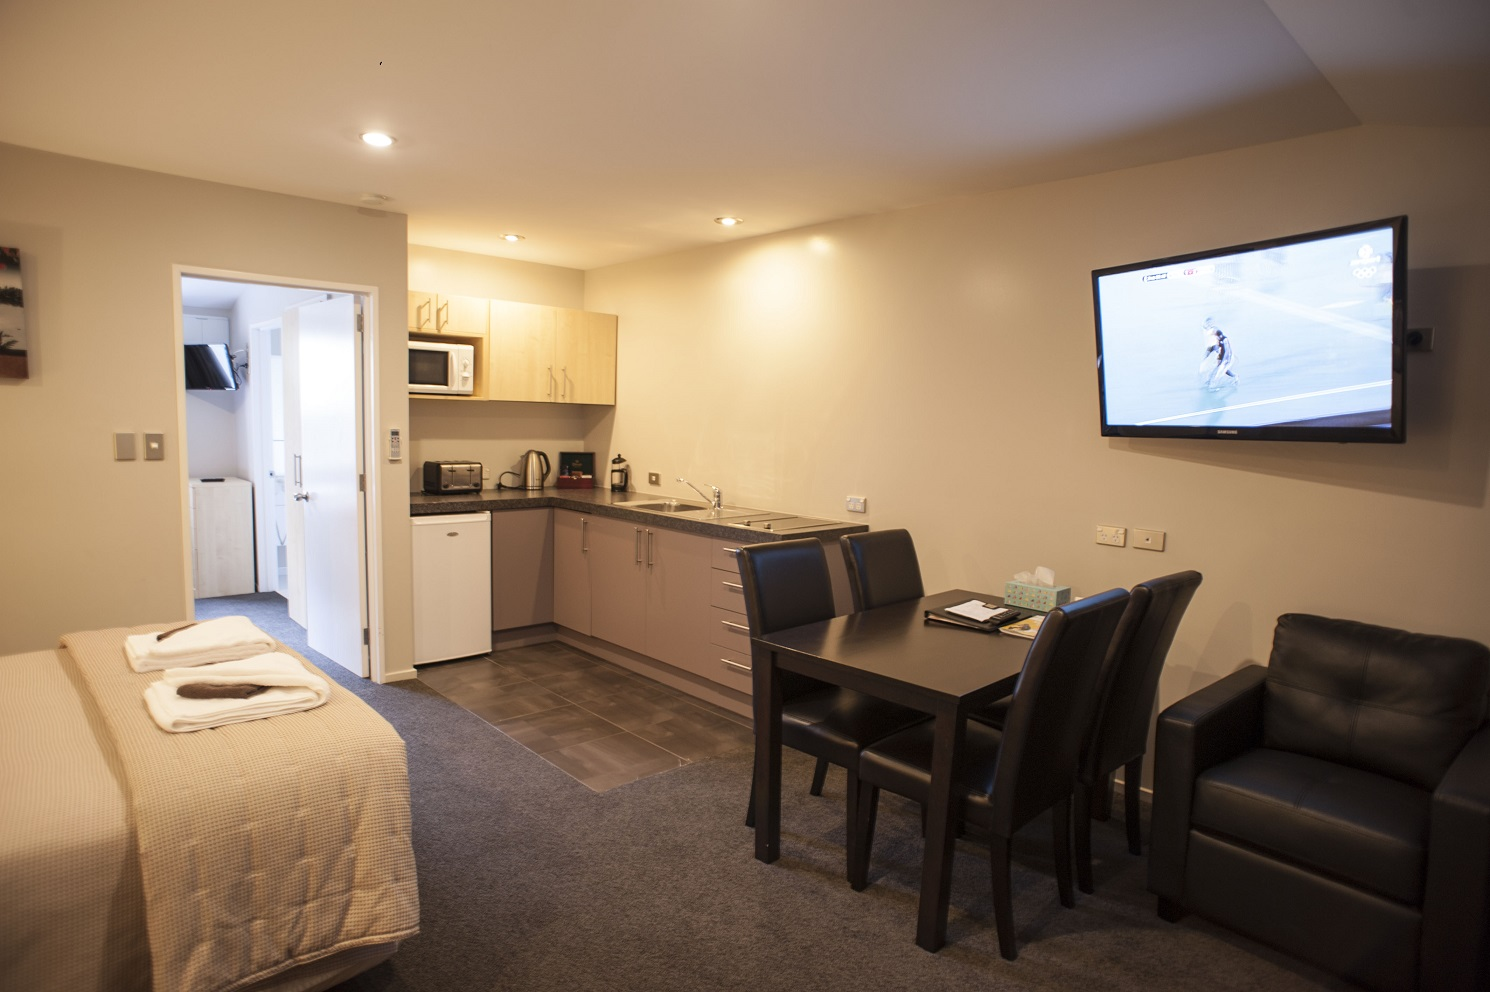 Christchurch Luxury Apartment Qualmark 5 Star 1 Bedroom Apartment